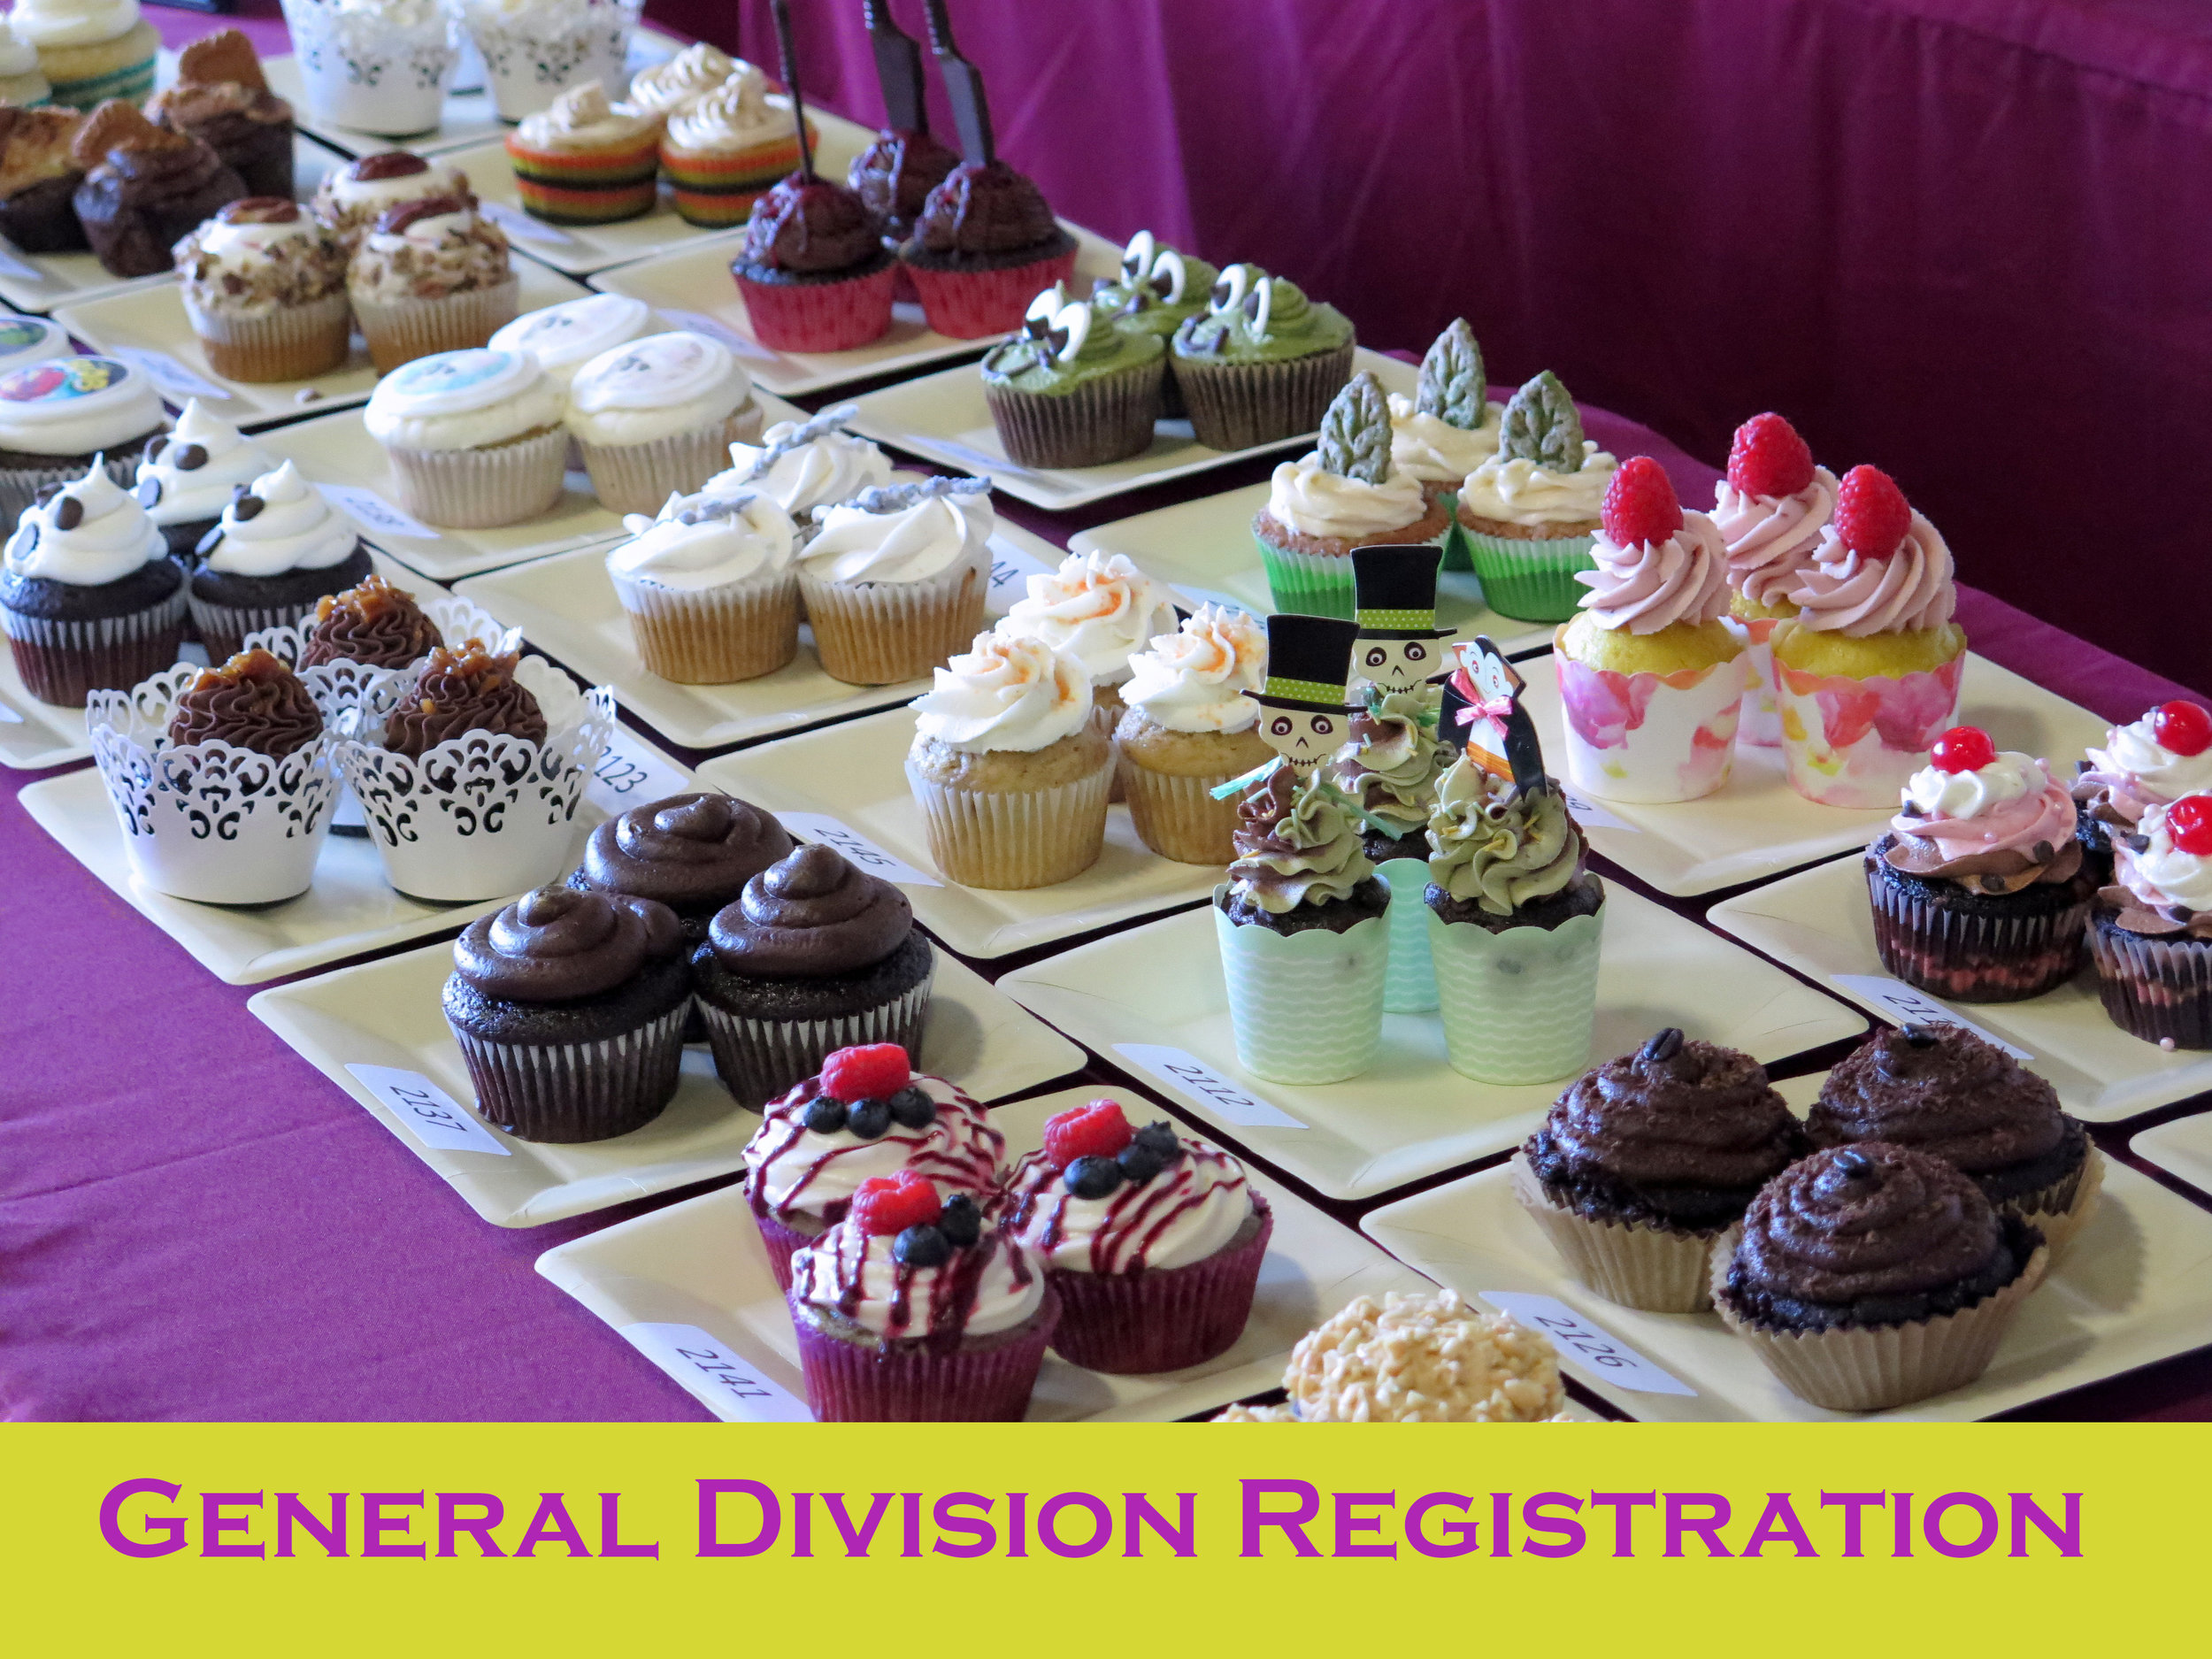 General Division Registration photo button.jpg